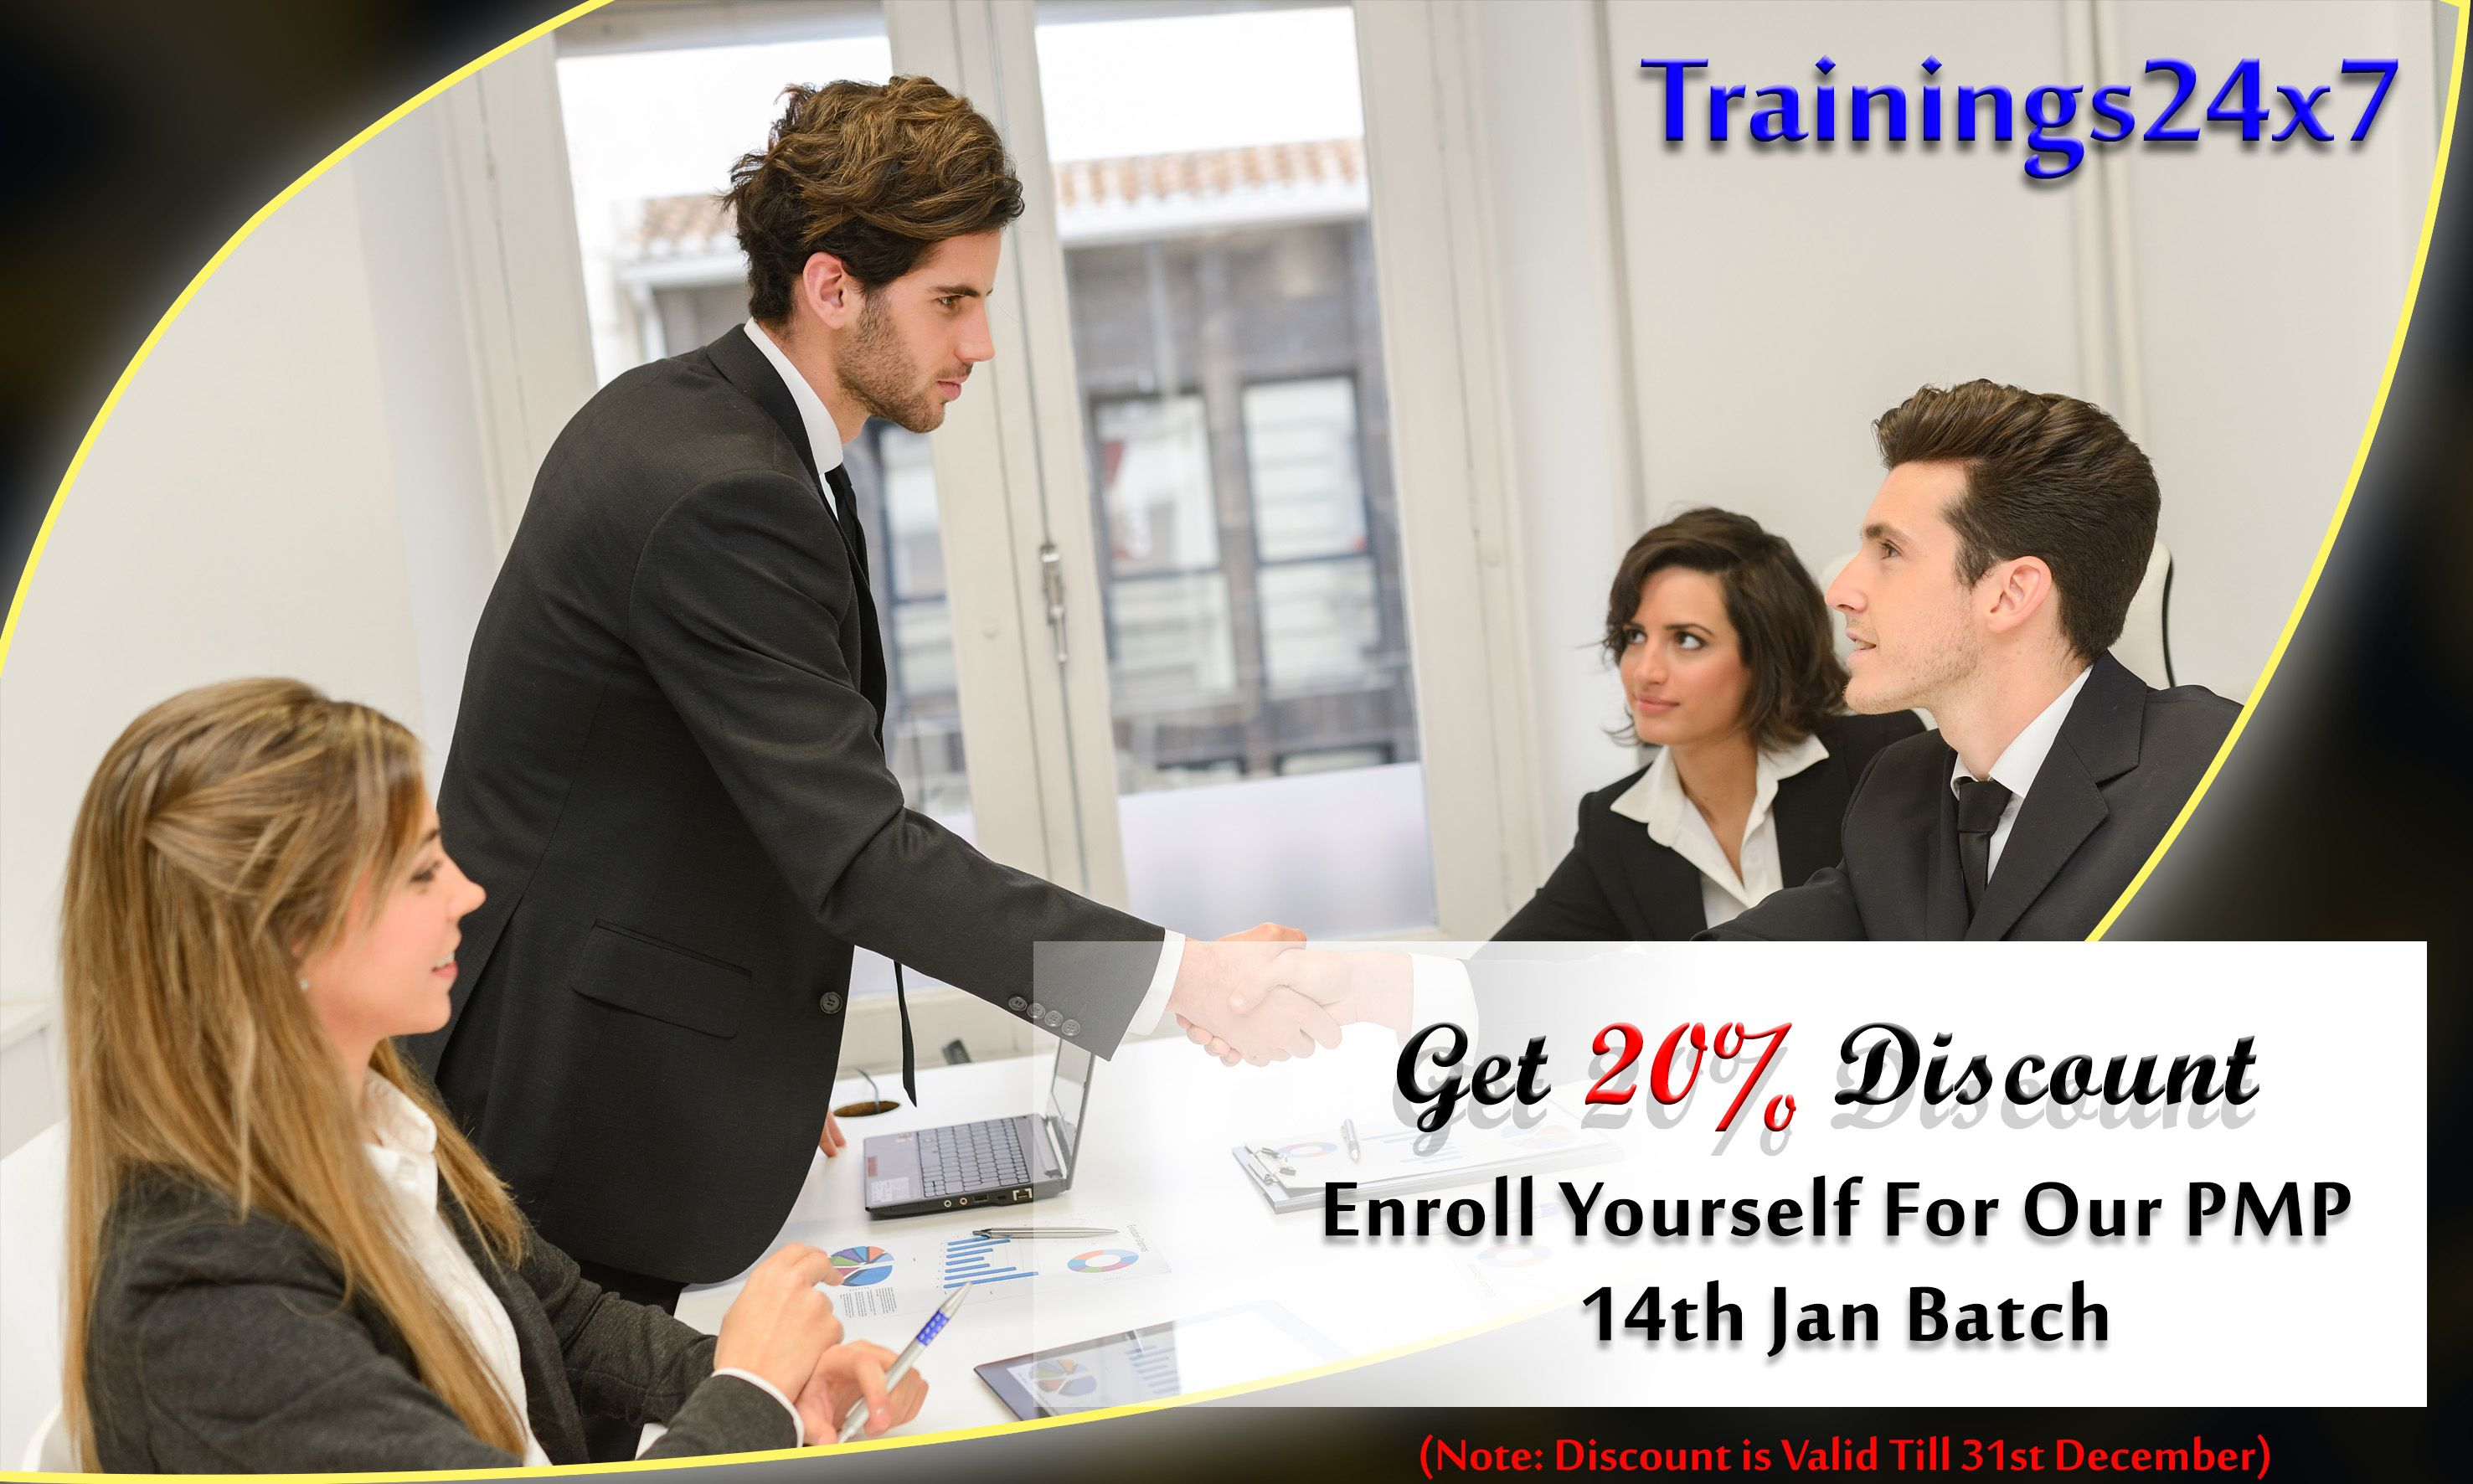 Trainings24x7 is providing 20 discount till 31st dec enroll your project management pmp classroom training at 301 preet vihar new delhi offers 35 pdus certificate 6 simulations mobile apps pass guarantee 1betcityfo Images